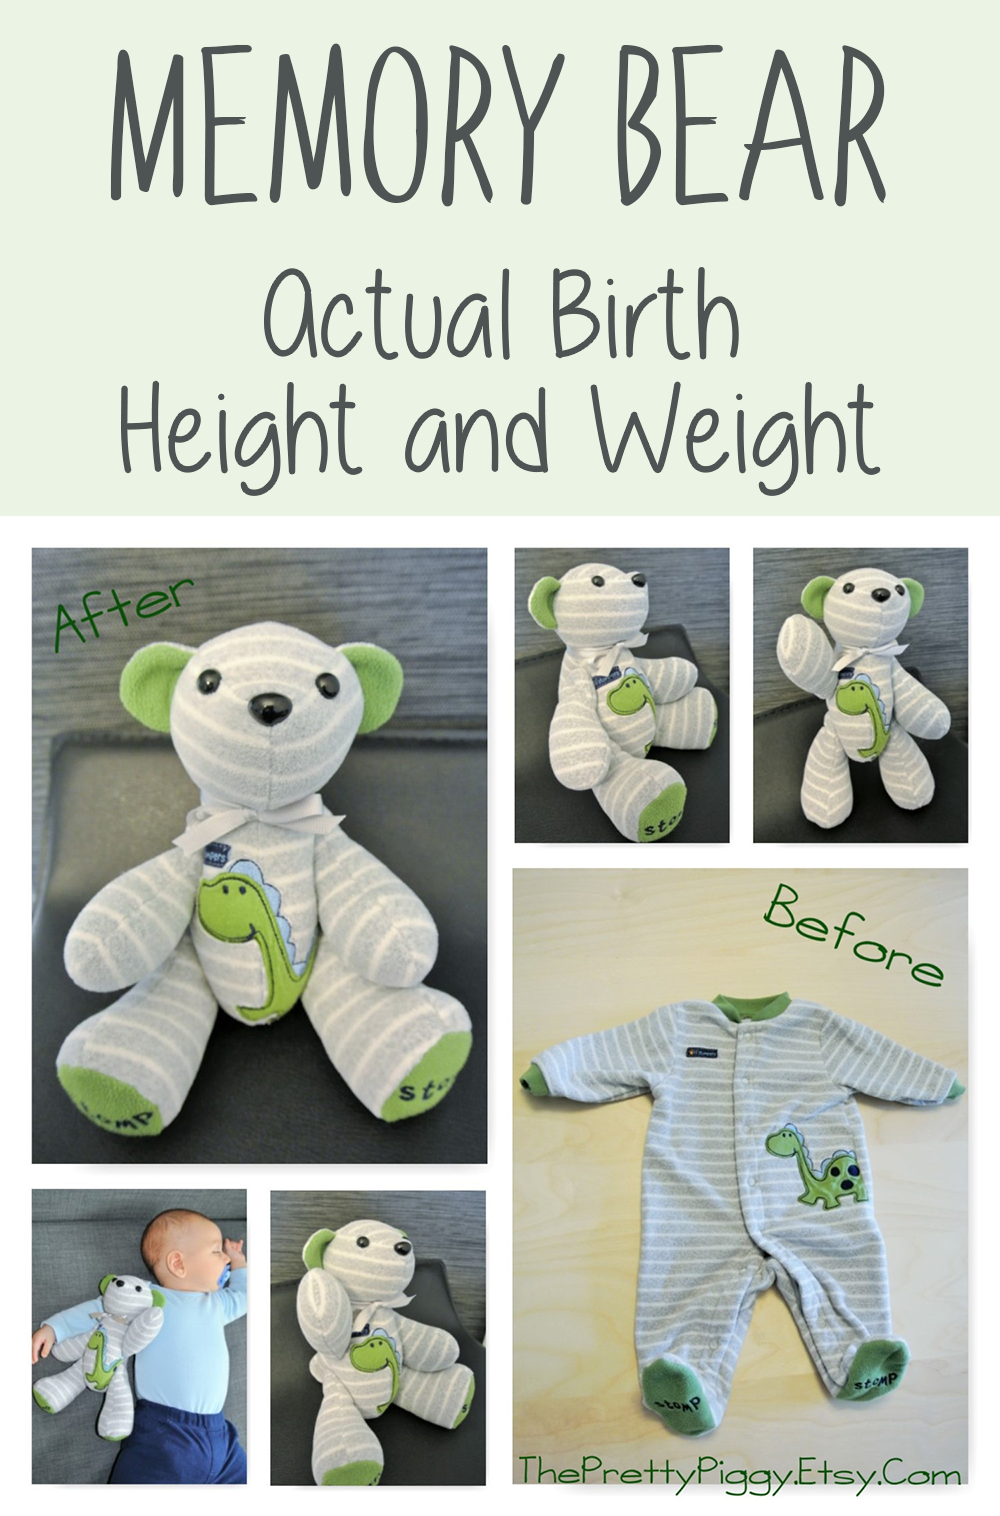 Baby Newborn Teddy Full Term Memory Bear Actual Birth Height Actual Birth